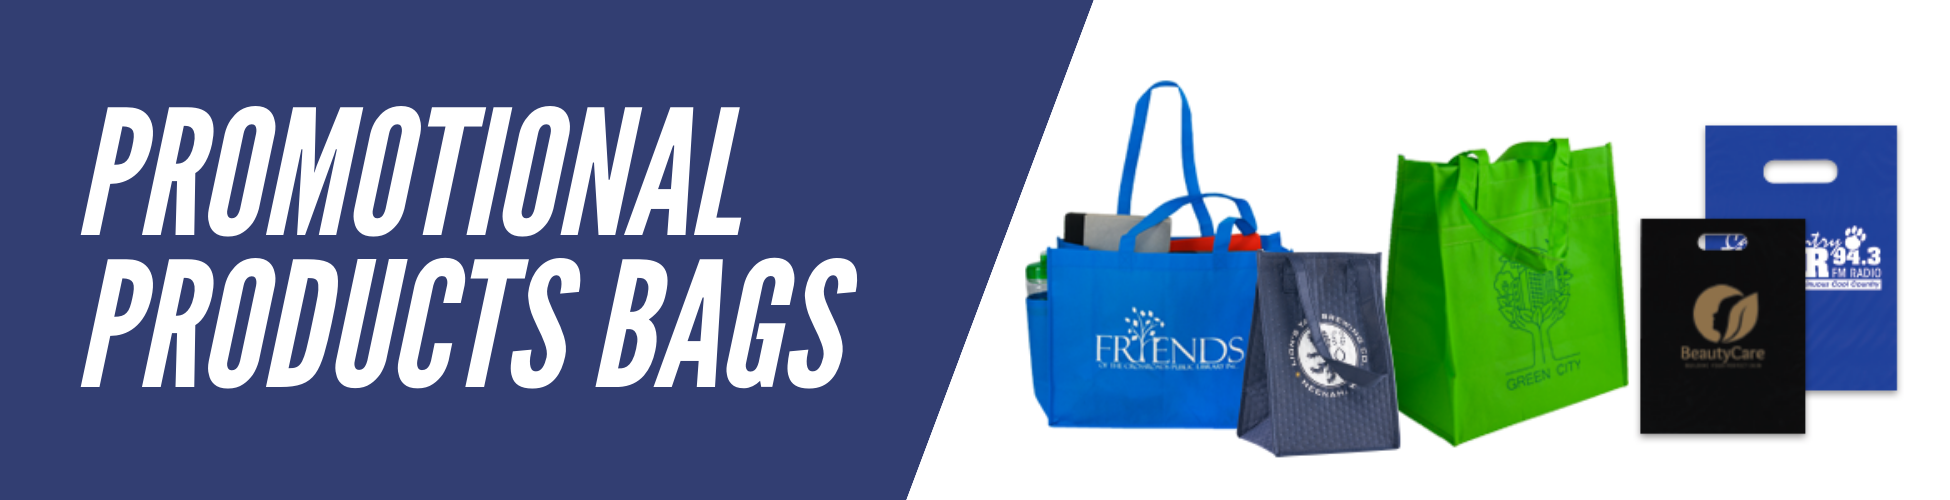 promotional-products-bags-banner-v2.png